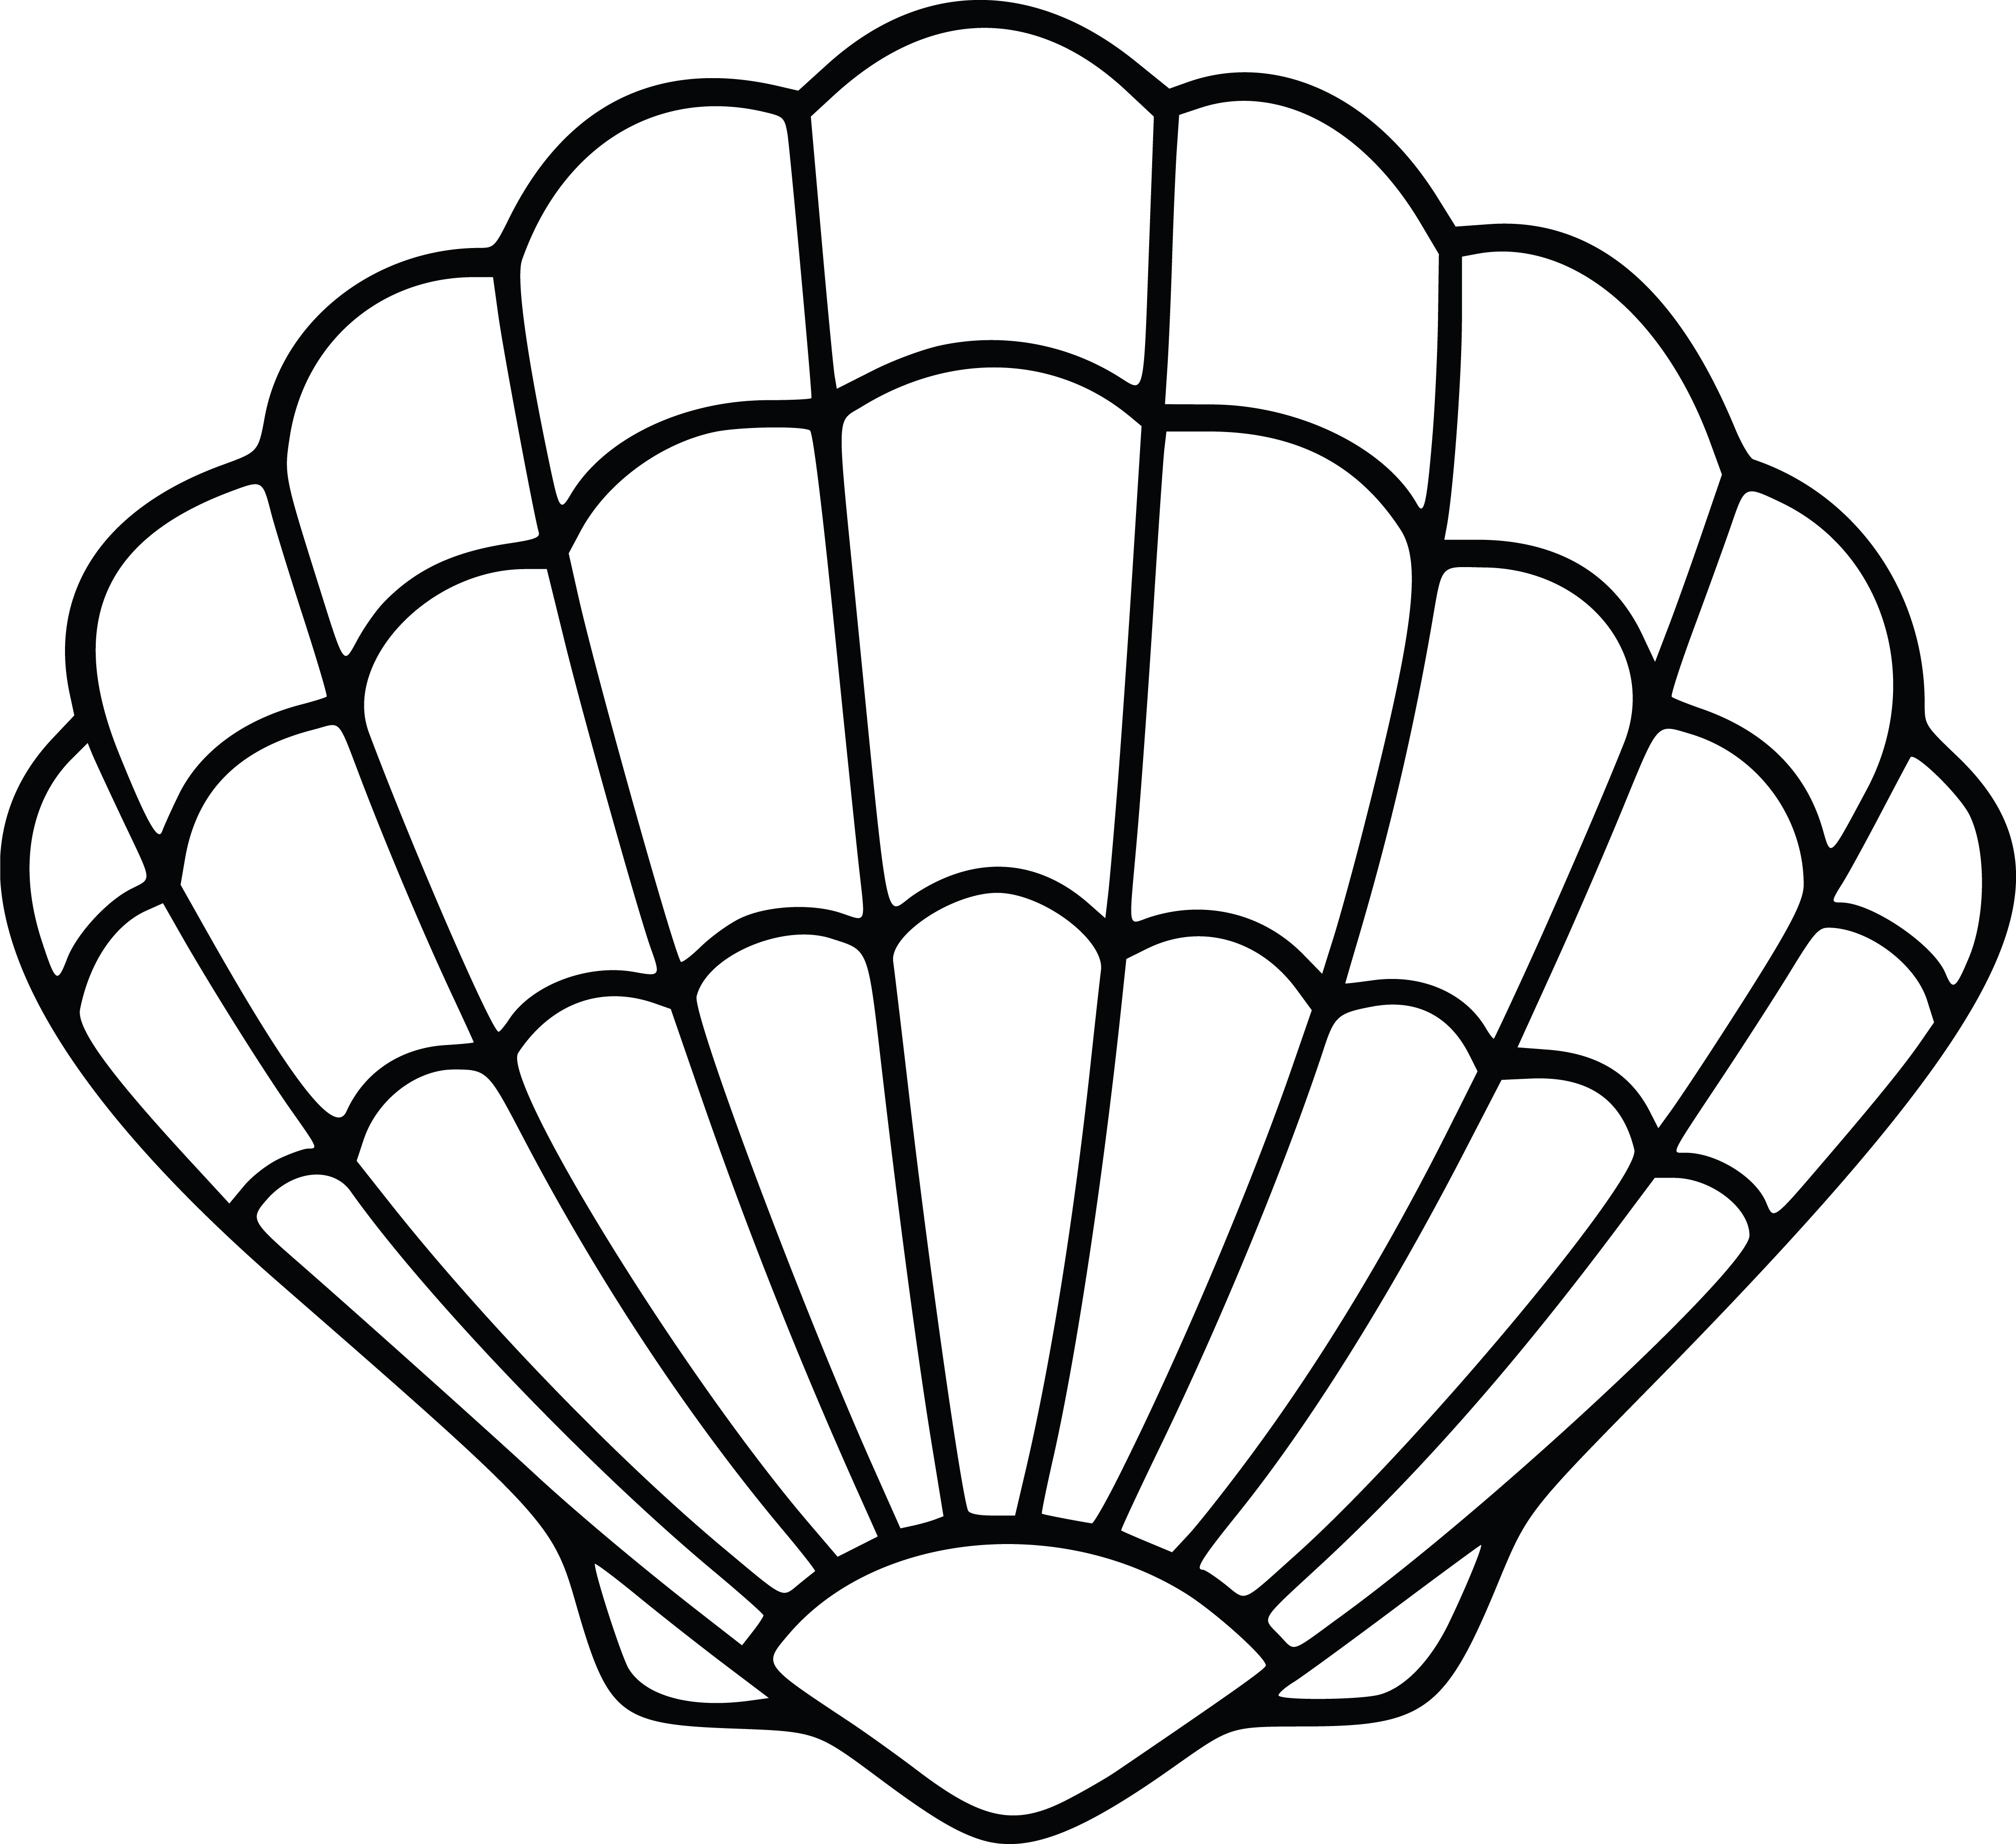 Shell clipart simple. Oyster drawing free download